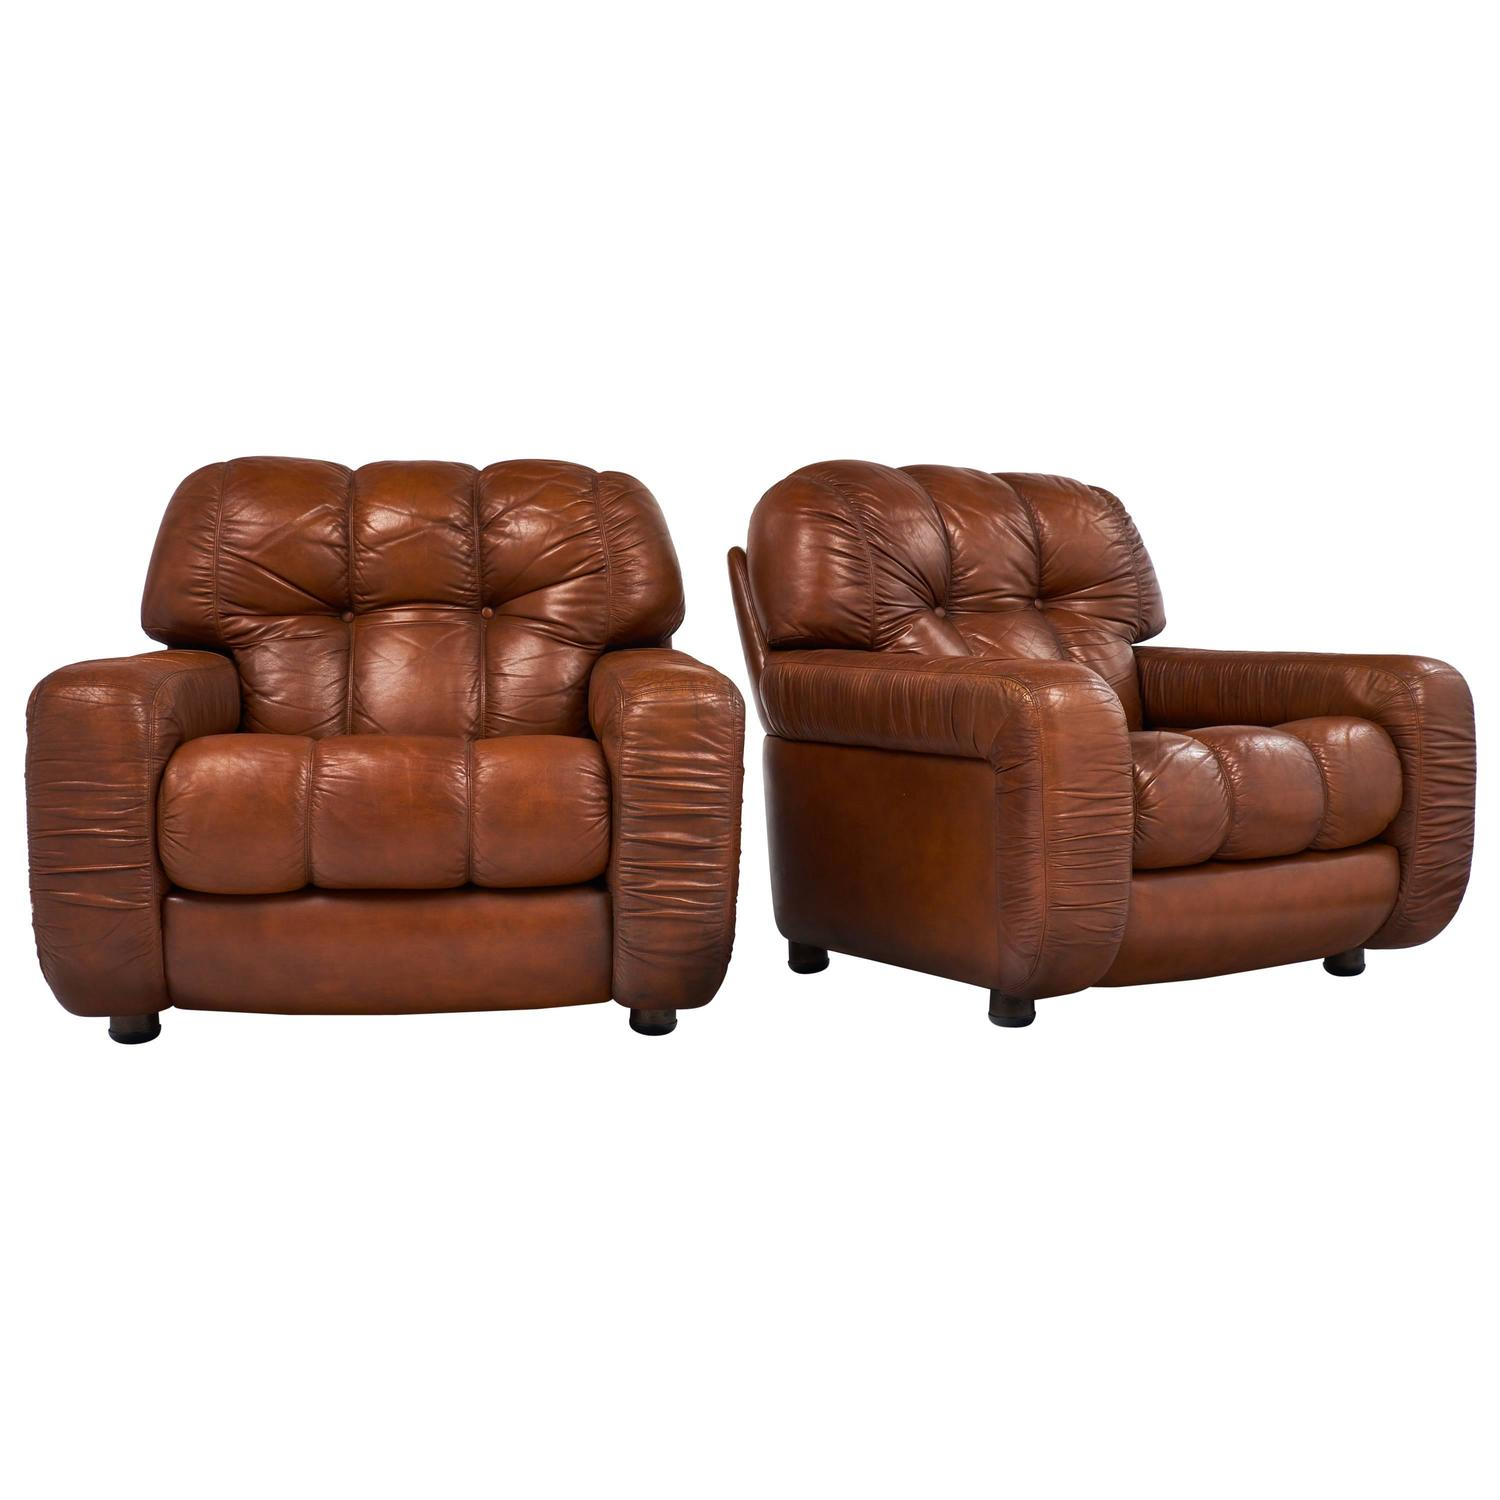 french vintage overstuffed leather club chairs for sale at 1stdibs. Black Bedroom Furniture Sets. Home Design Ideas